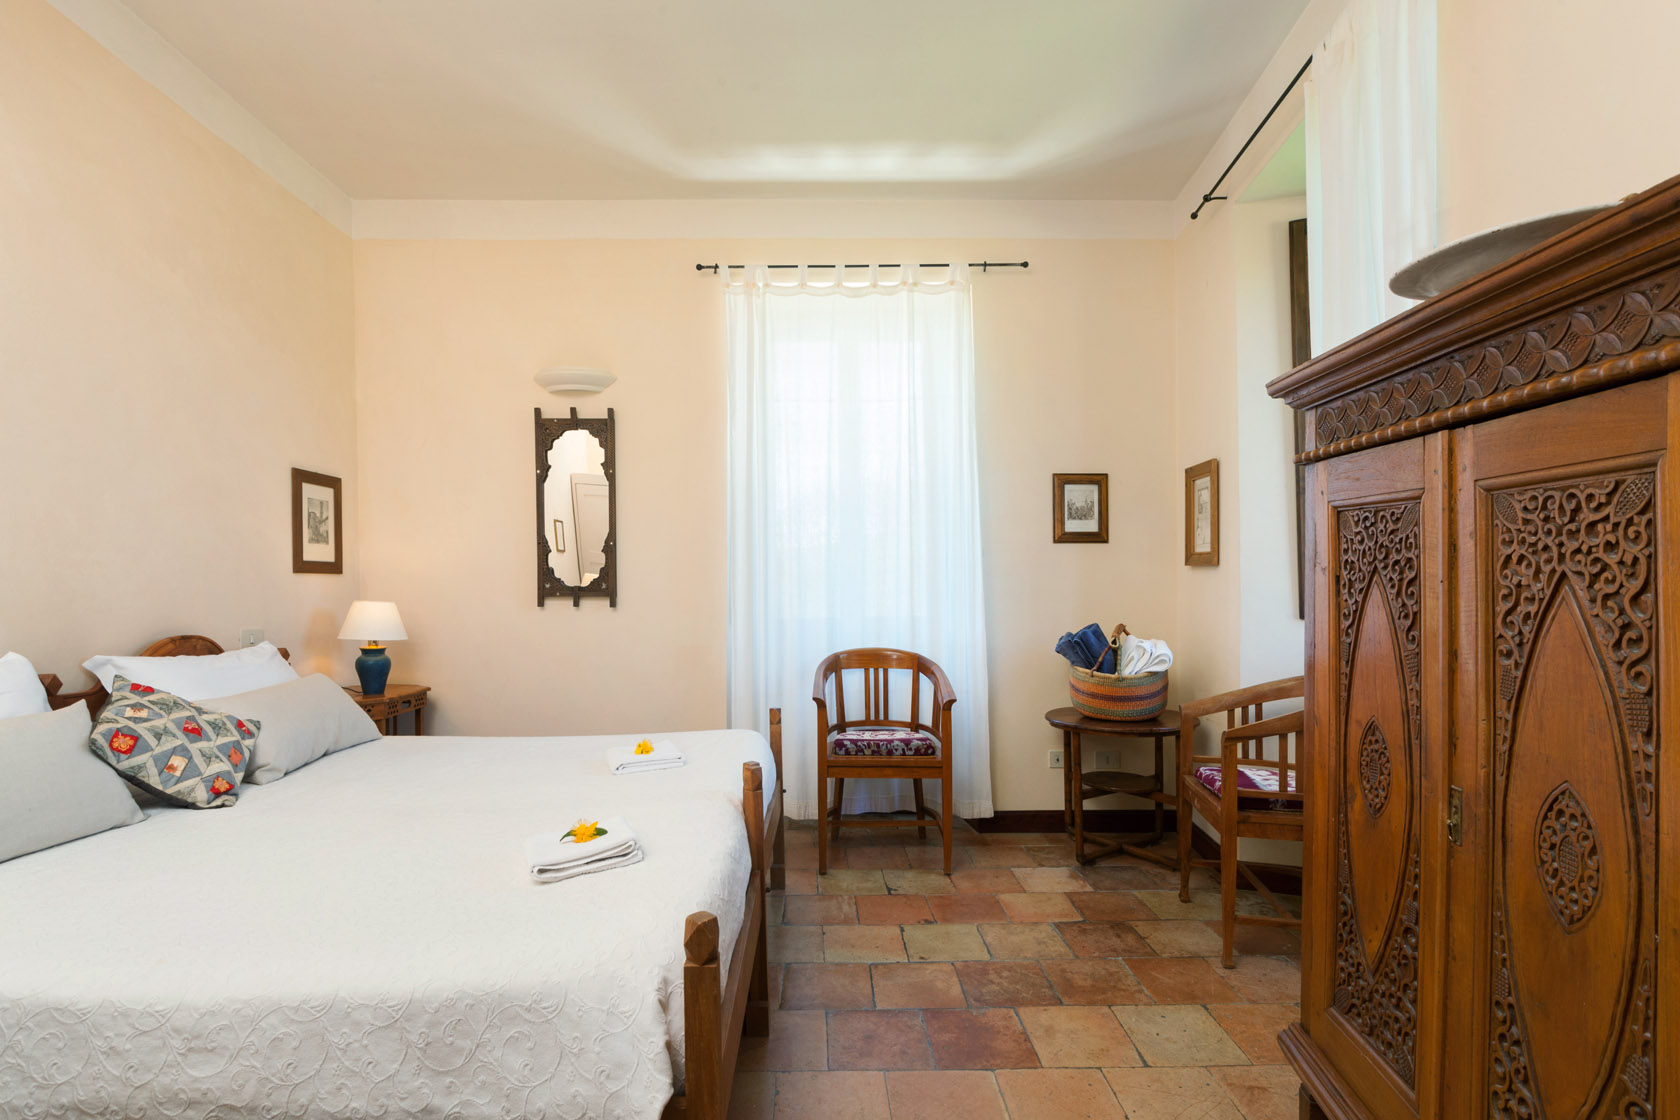 locanda-rooms-07.jpg